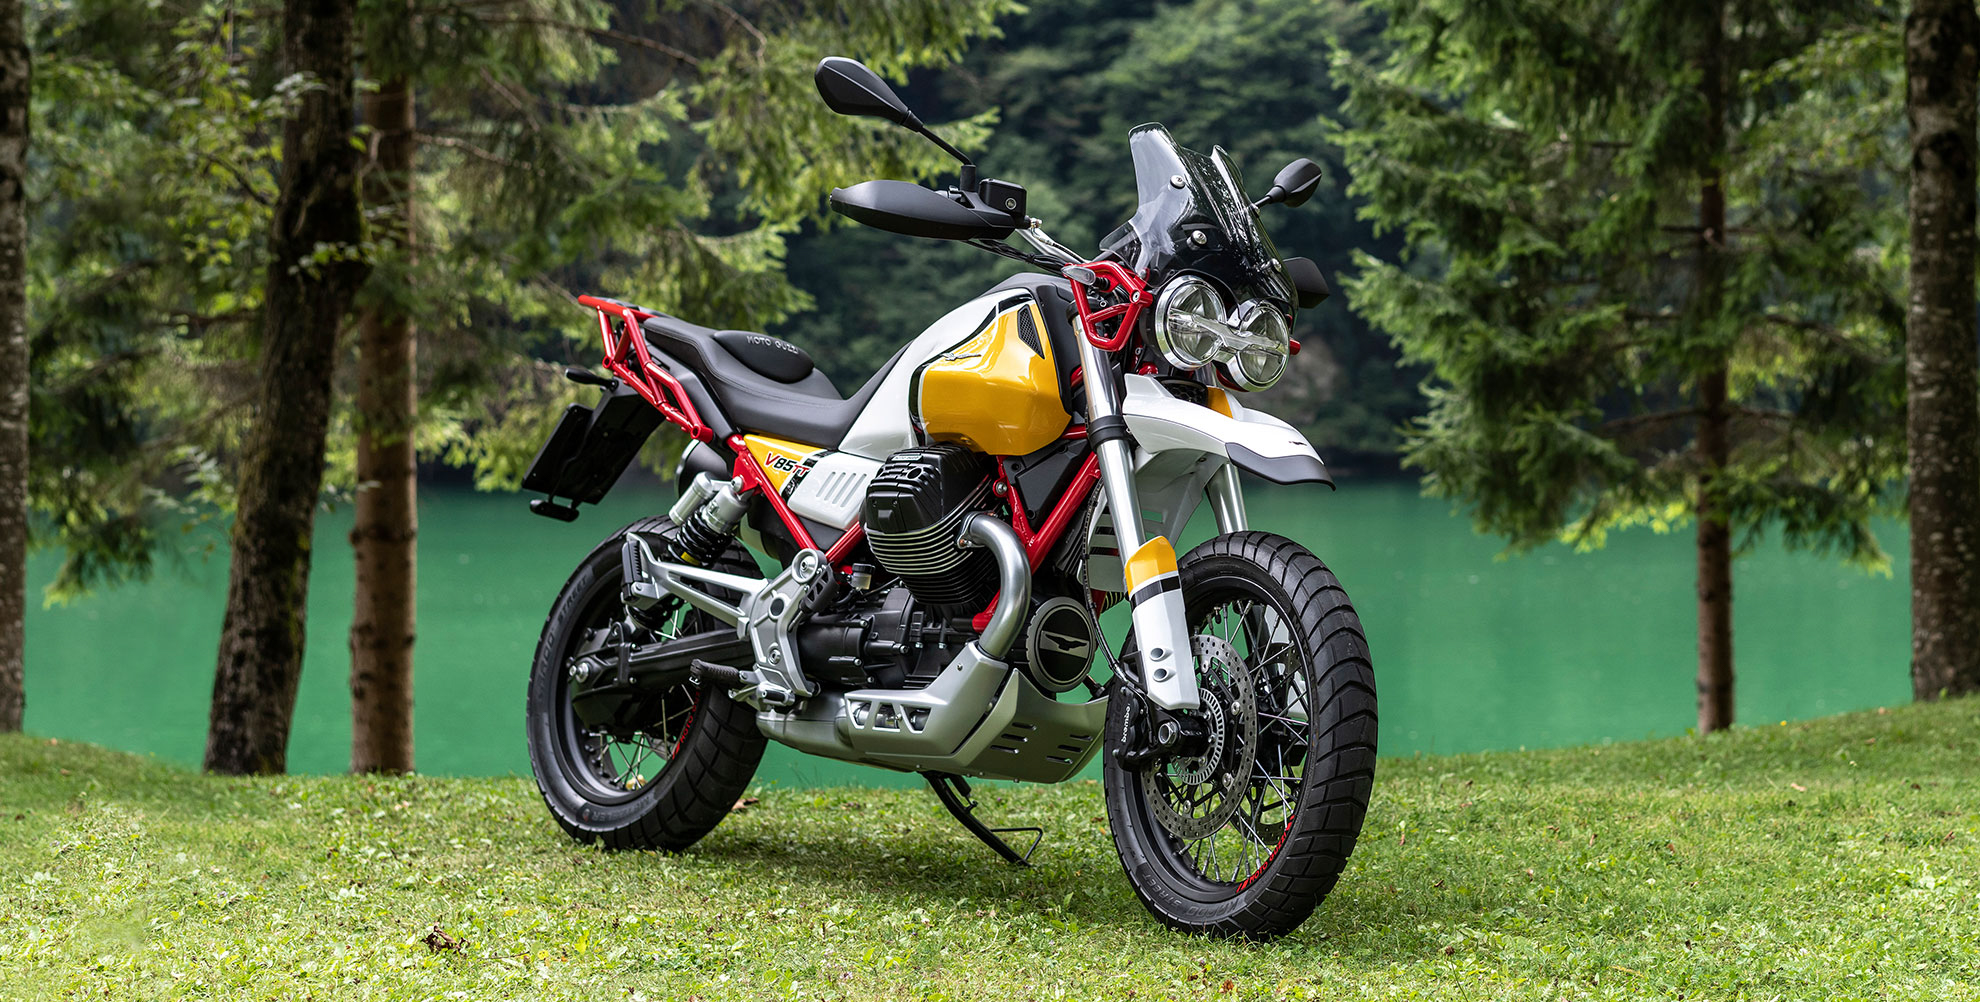 Moto Guzzi V85tt Confirmed For Australia But Can It Take On Honda Twin Bmw Bikes Press Photos Show The Pre Production Bike Every Bit As Stylish Concept Looks A Retro Is Talking Up Thoroughly Modern